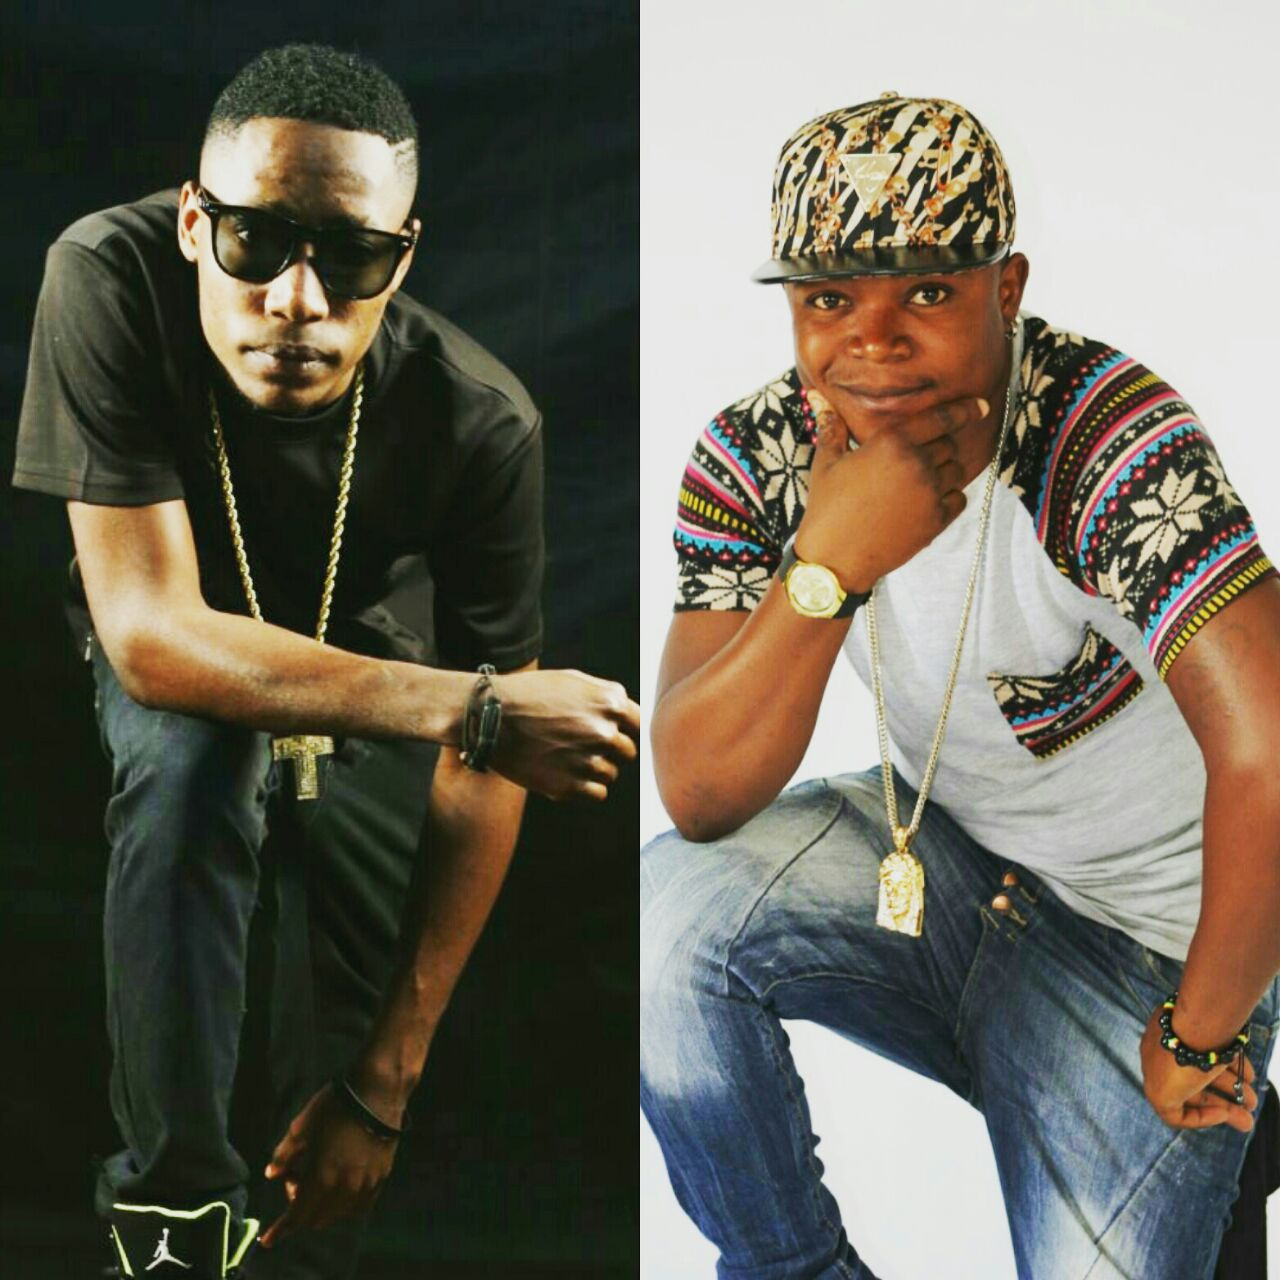 Jazzy boy & DBwoy Have finally been signed to Shenky Shugah's record label